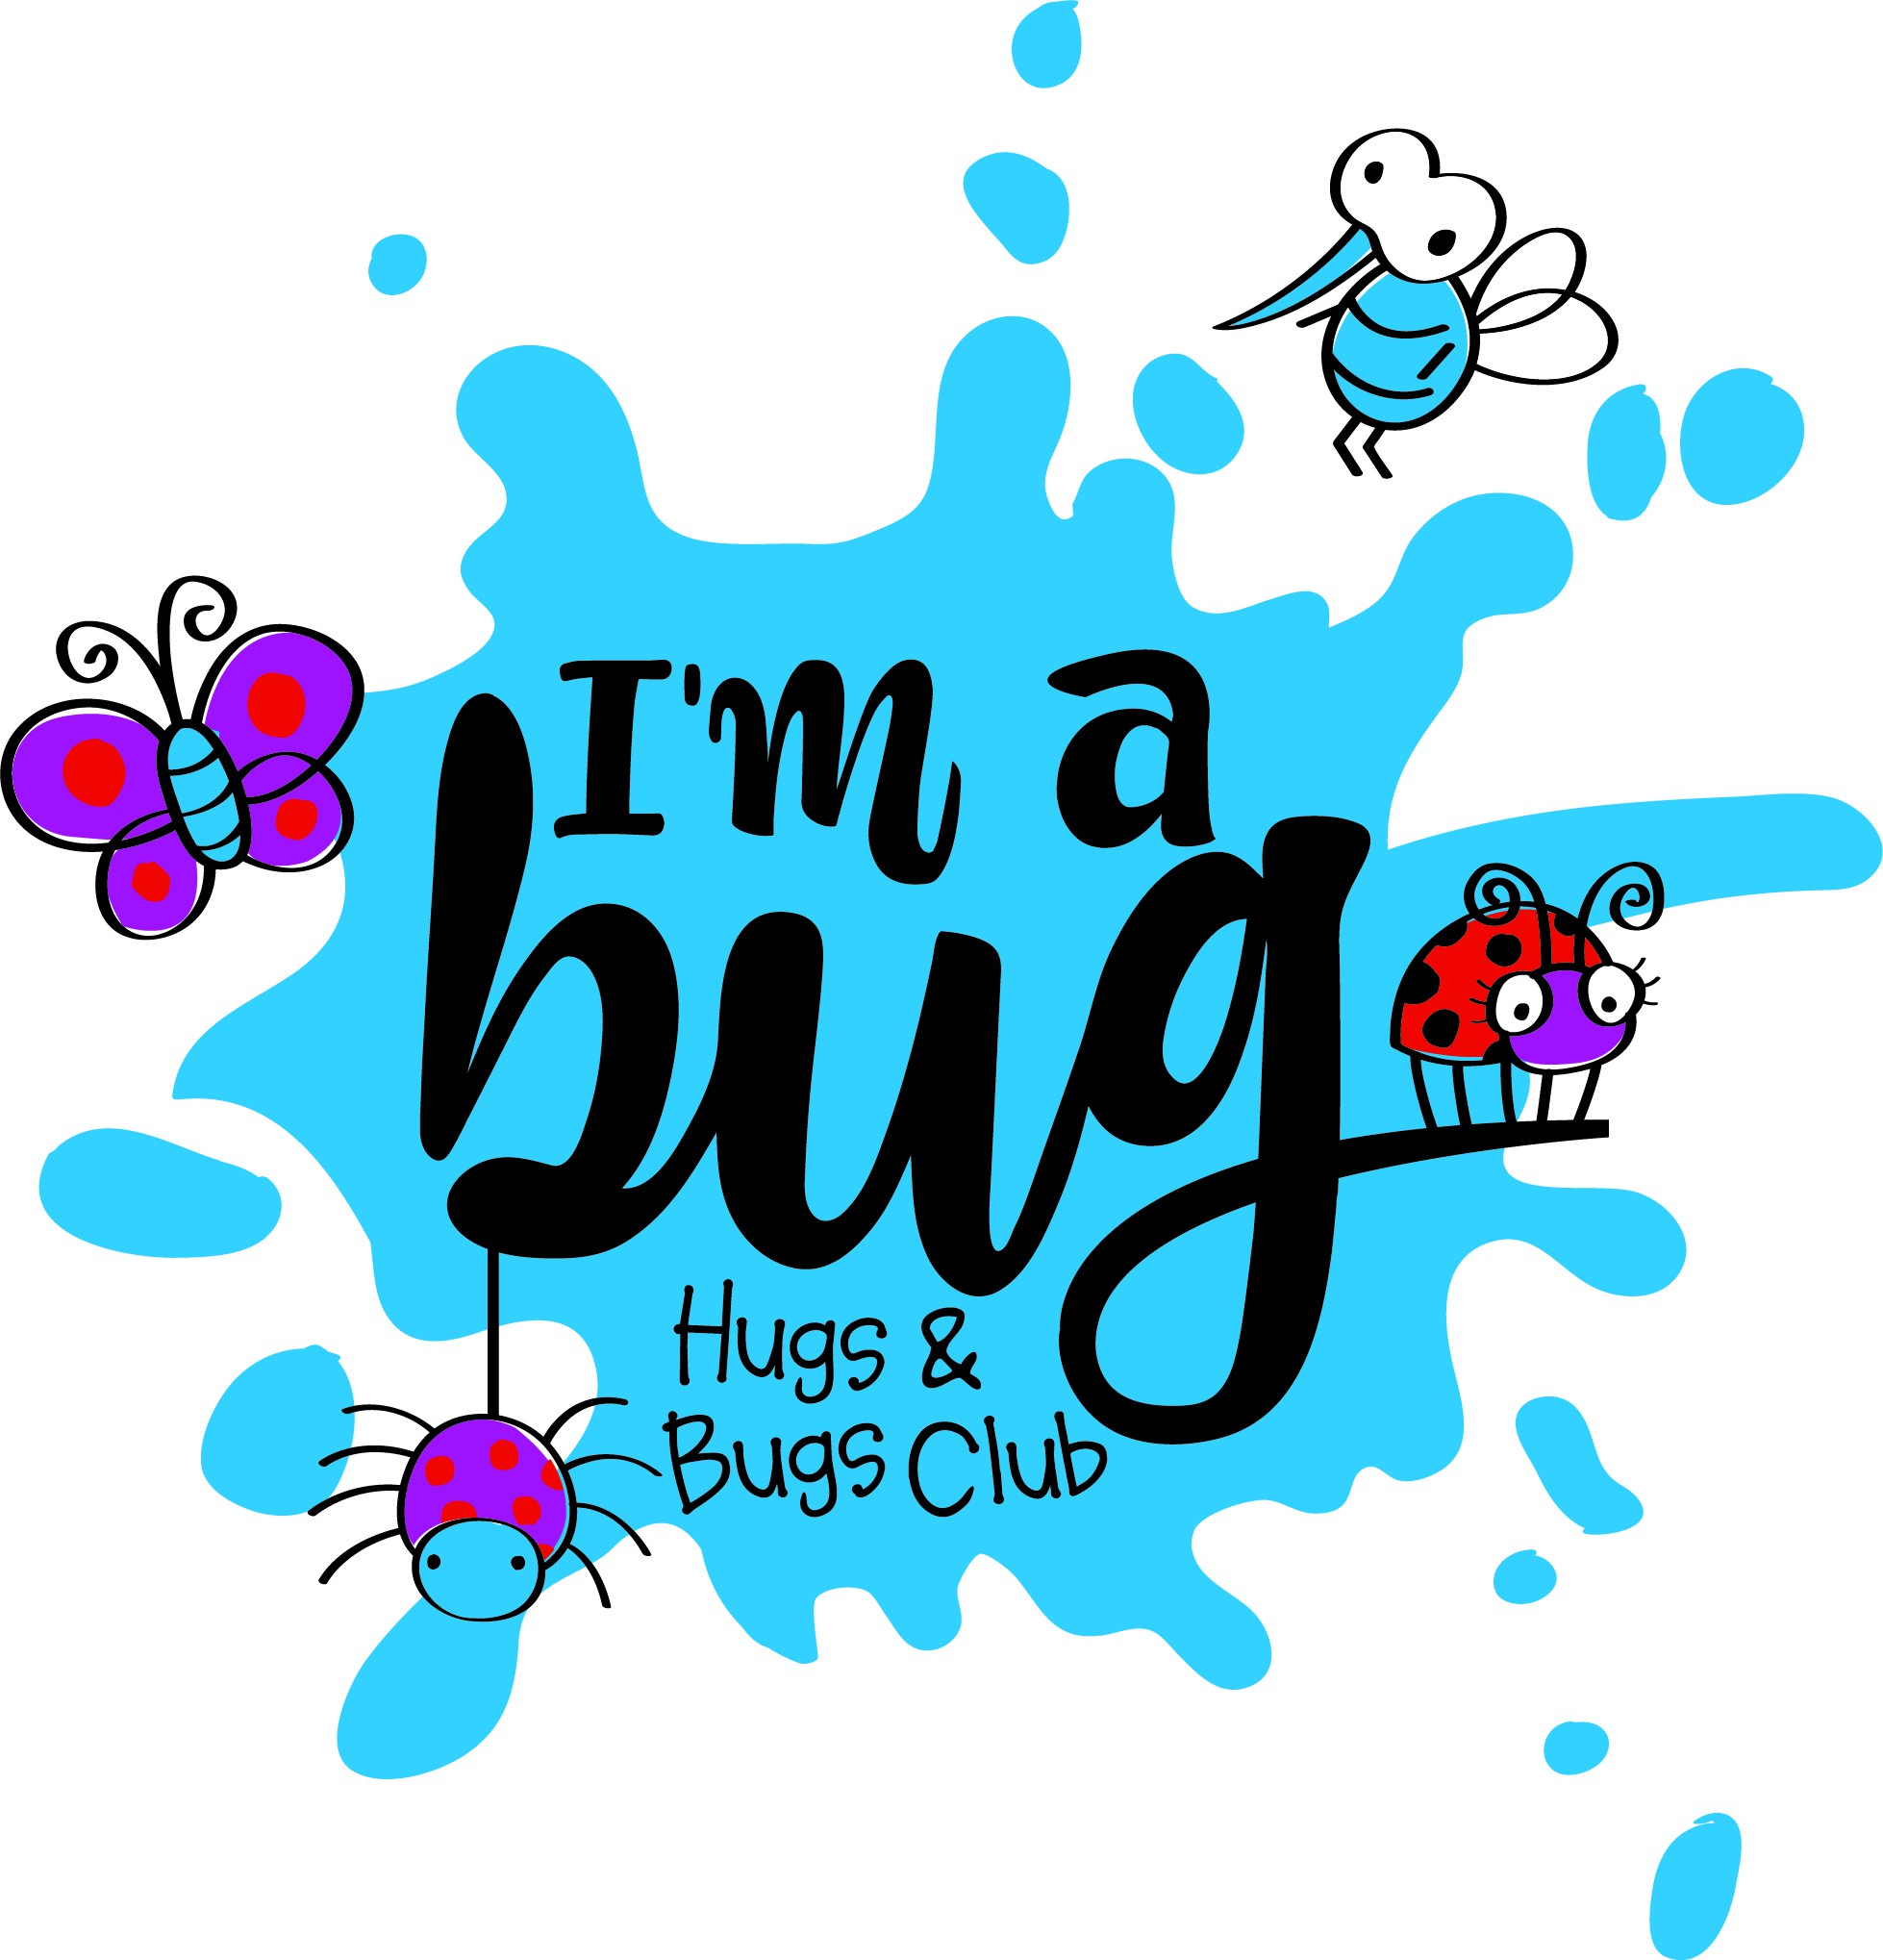 Shirts for bugs